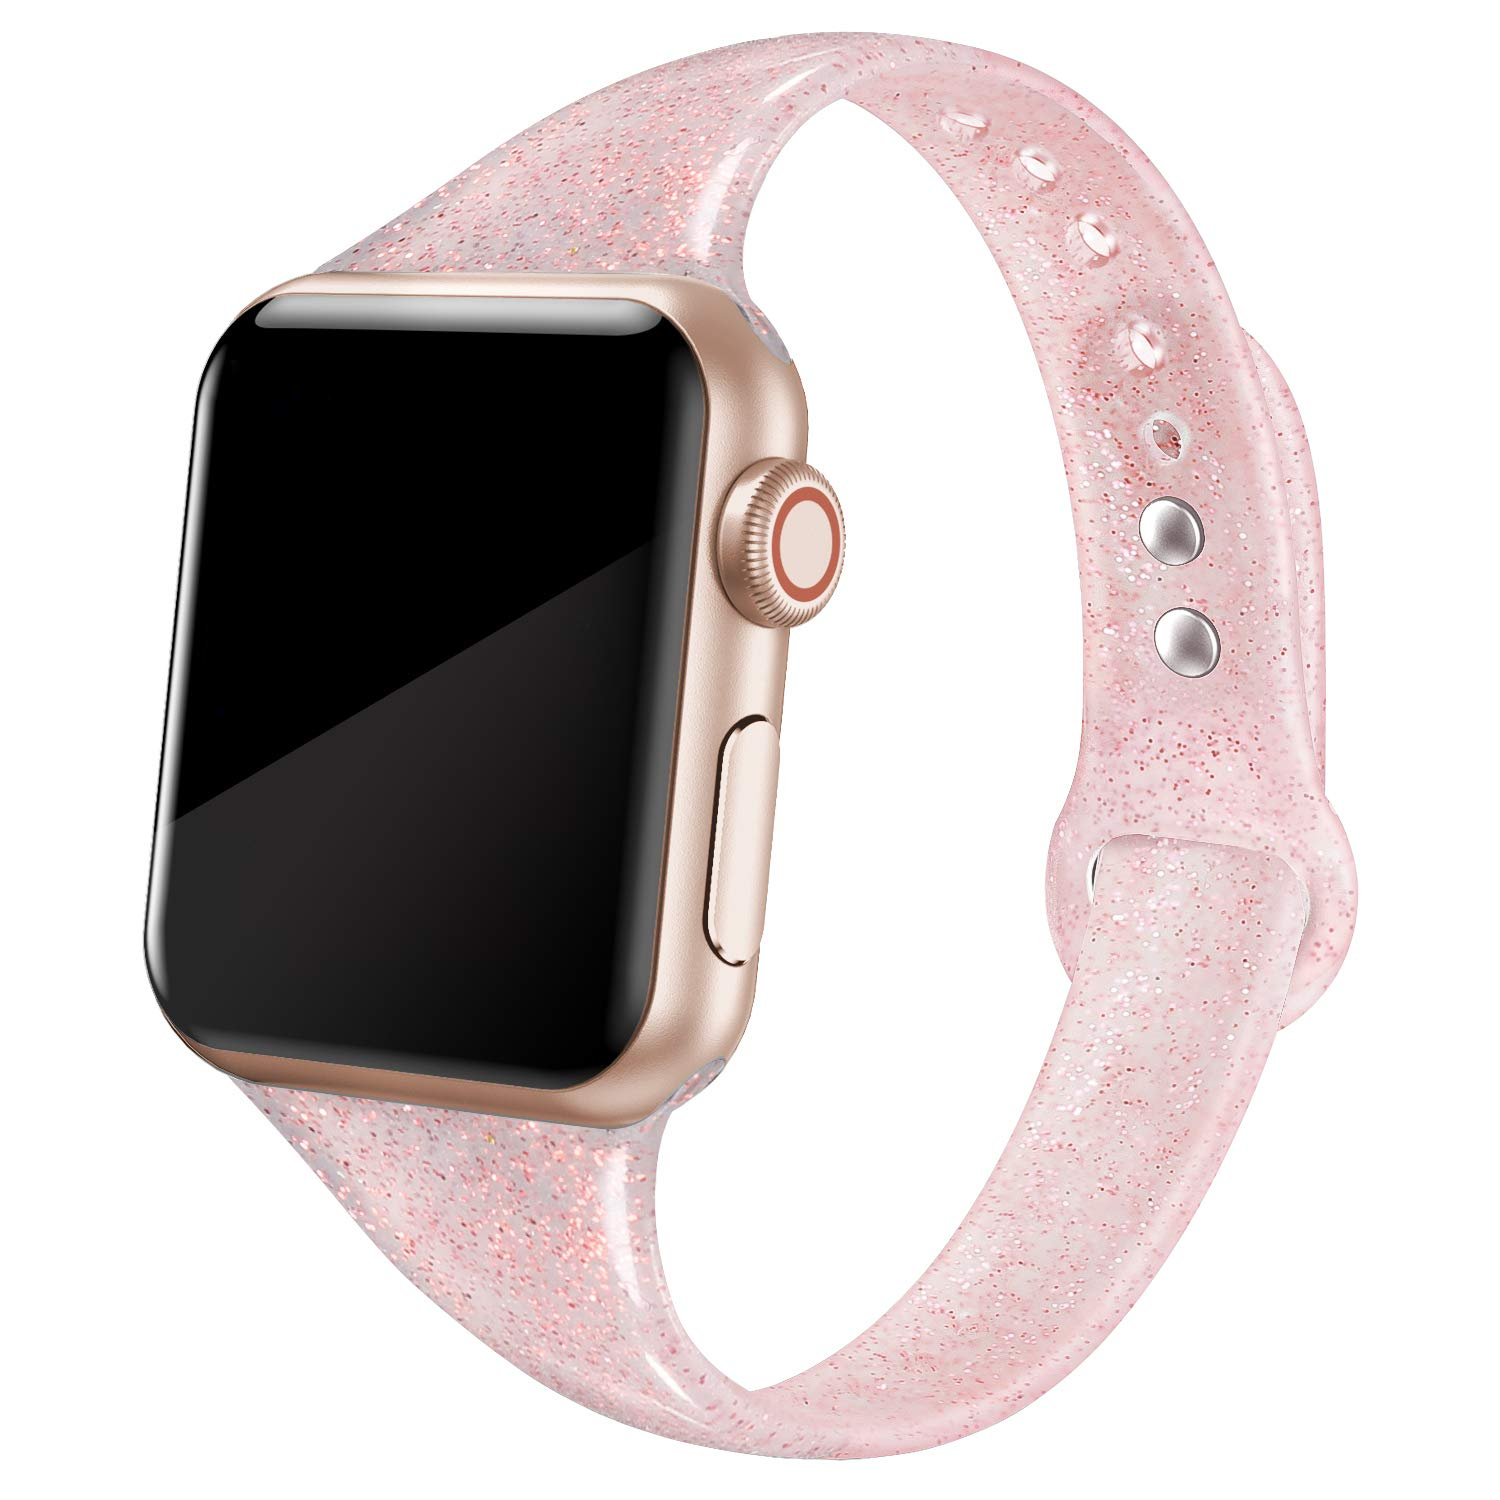 Malla Silicona Para Apple Watch (38/40mm) Swees [7s9r1yv9]